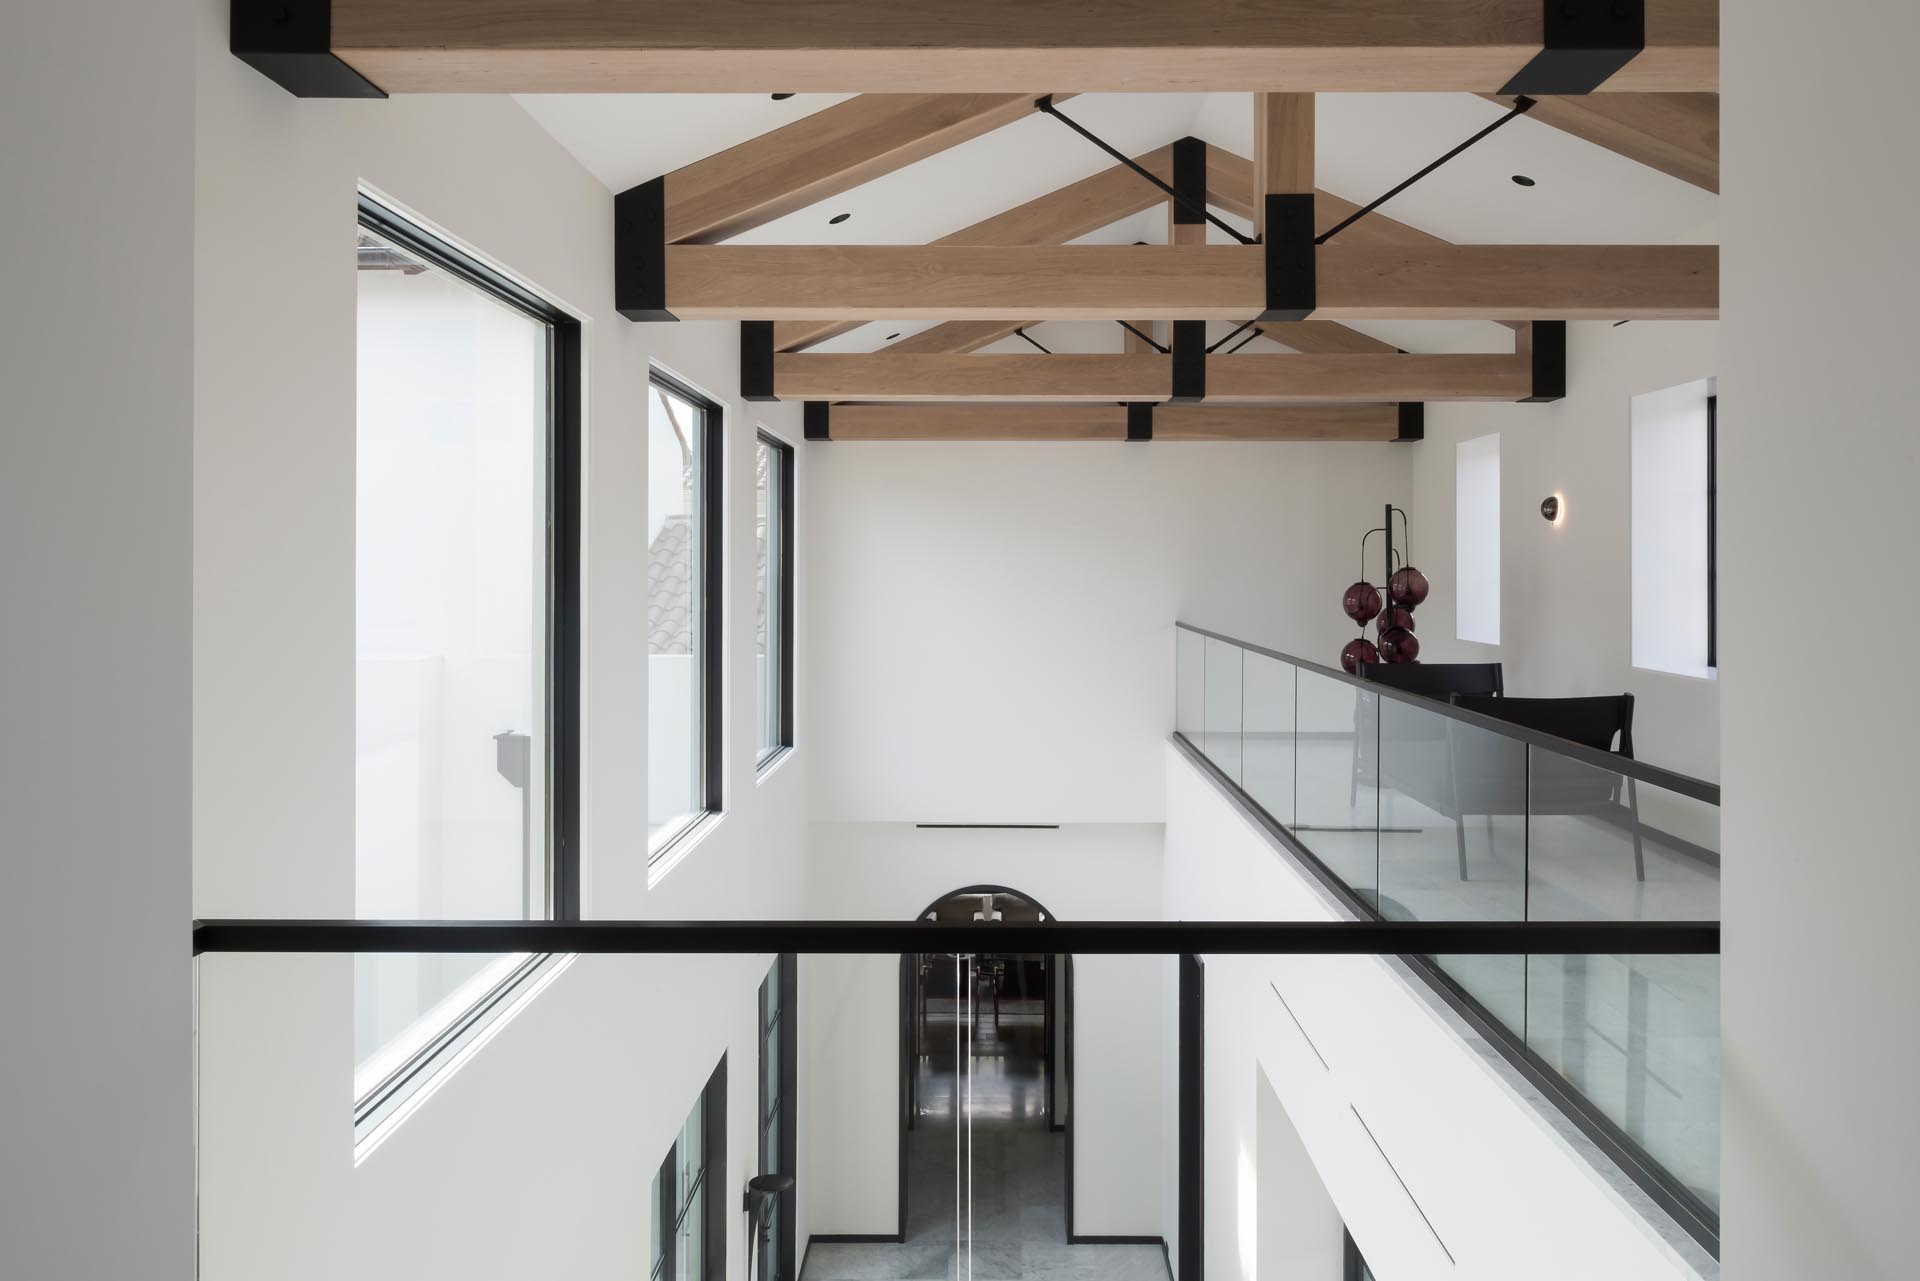 Exposed wood trusses add a natural element to the space, while the black supports match the window frames, doorways, and handrails.